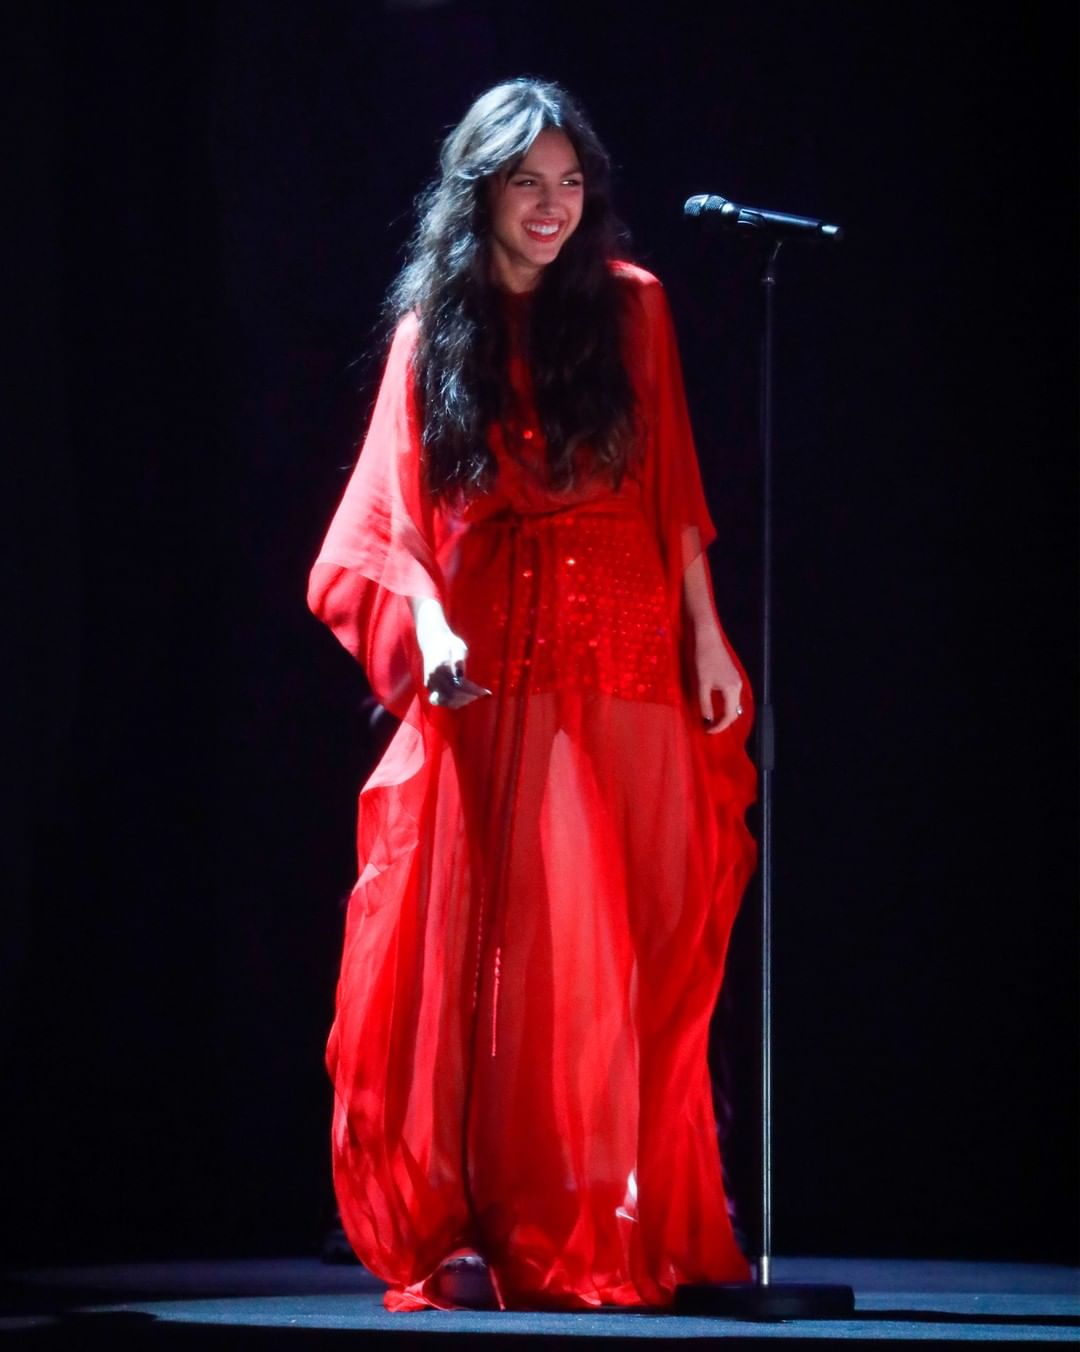 Red on the stage